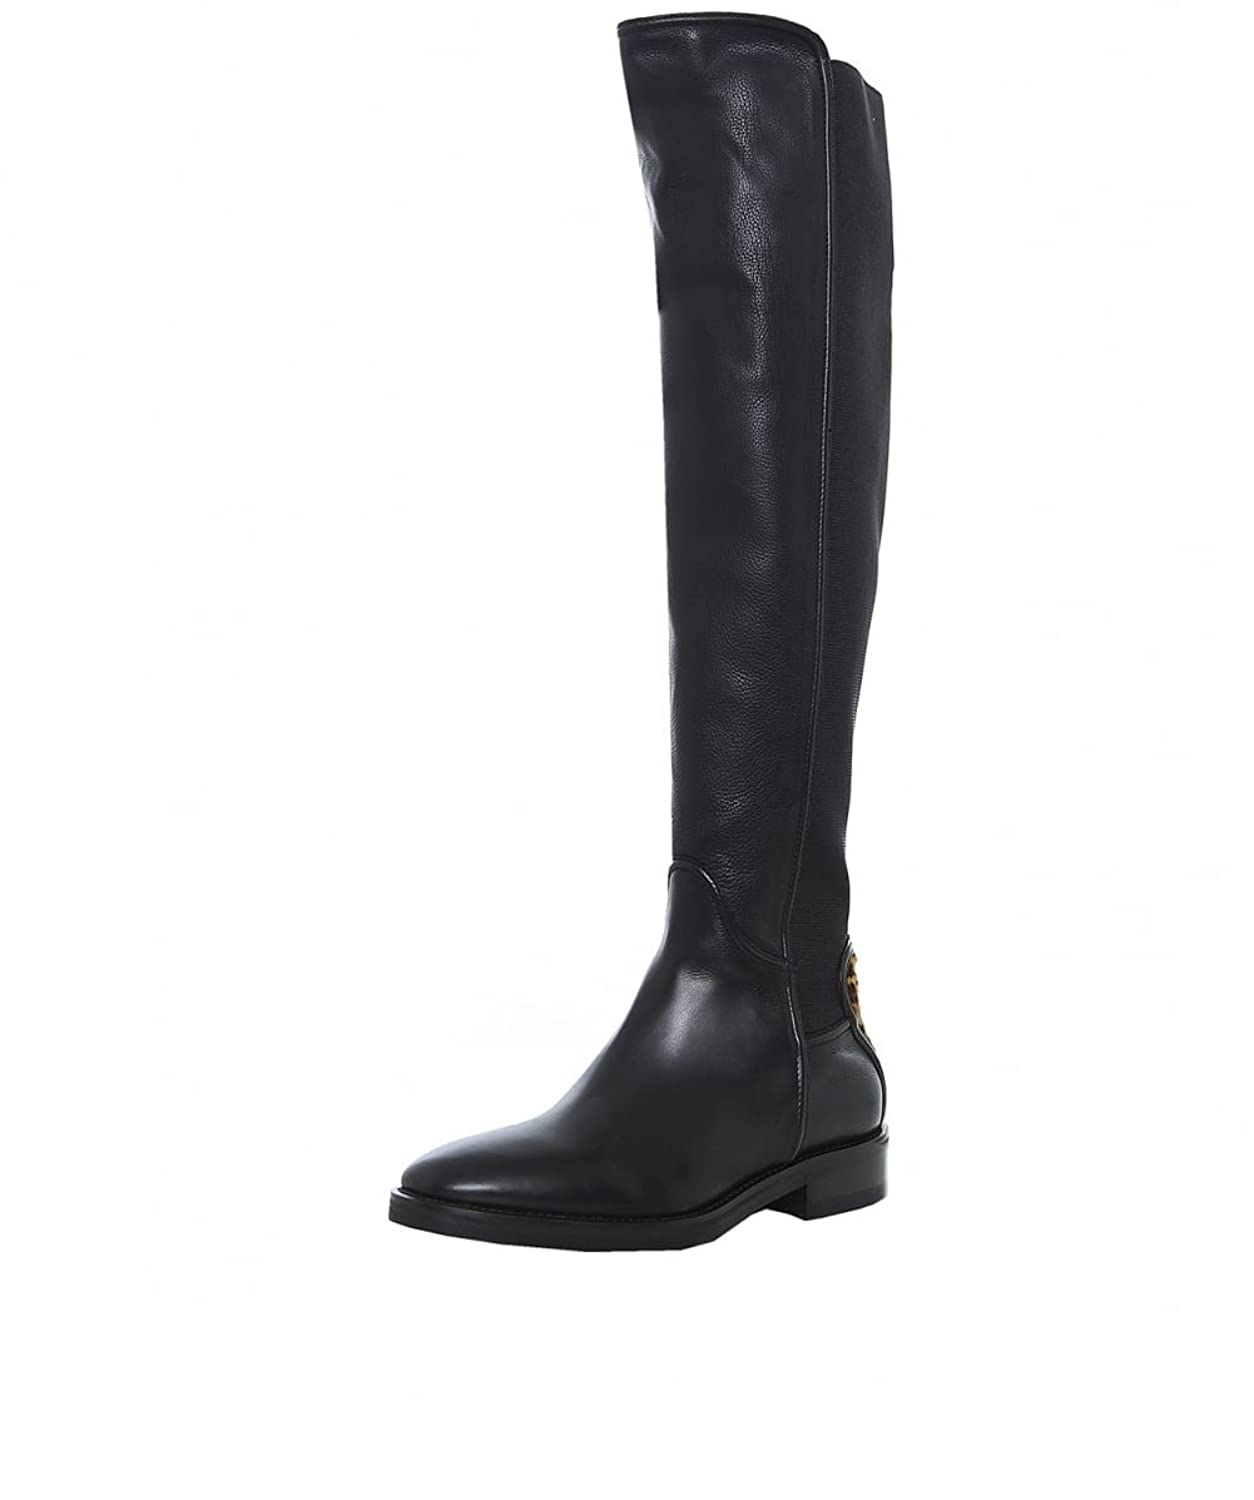 Le Pepe Women's Leopard Knee High Leather Boots Black